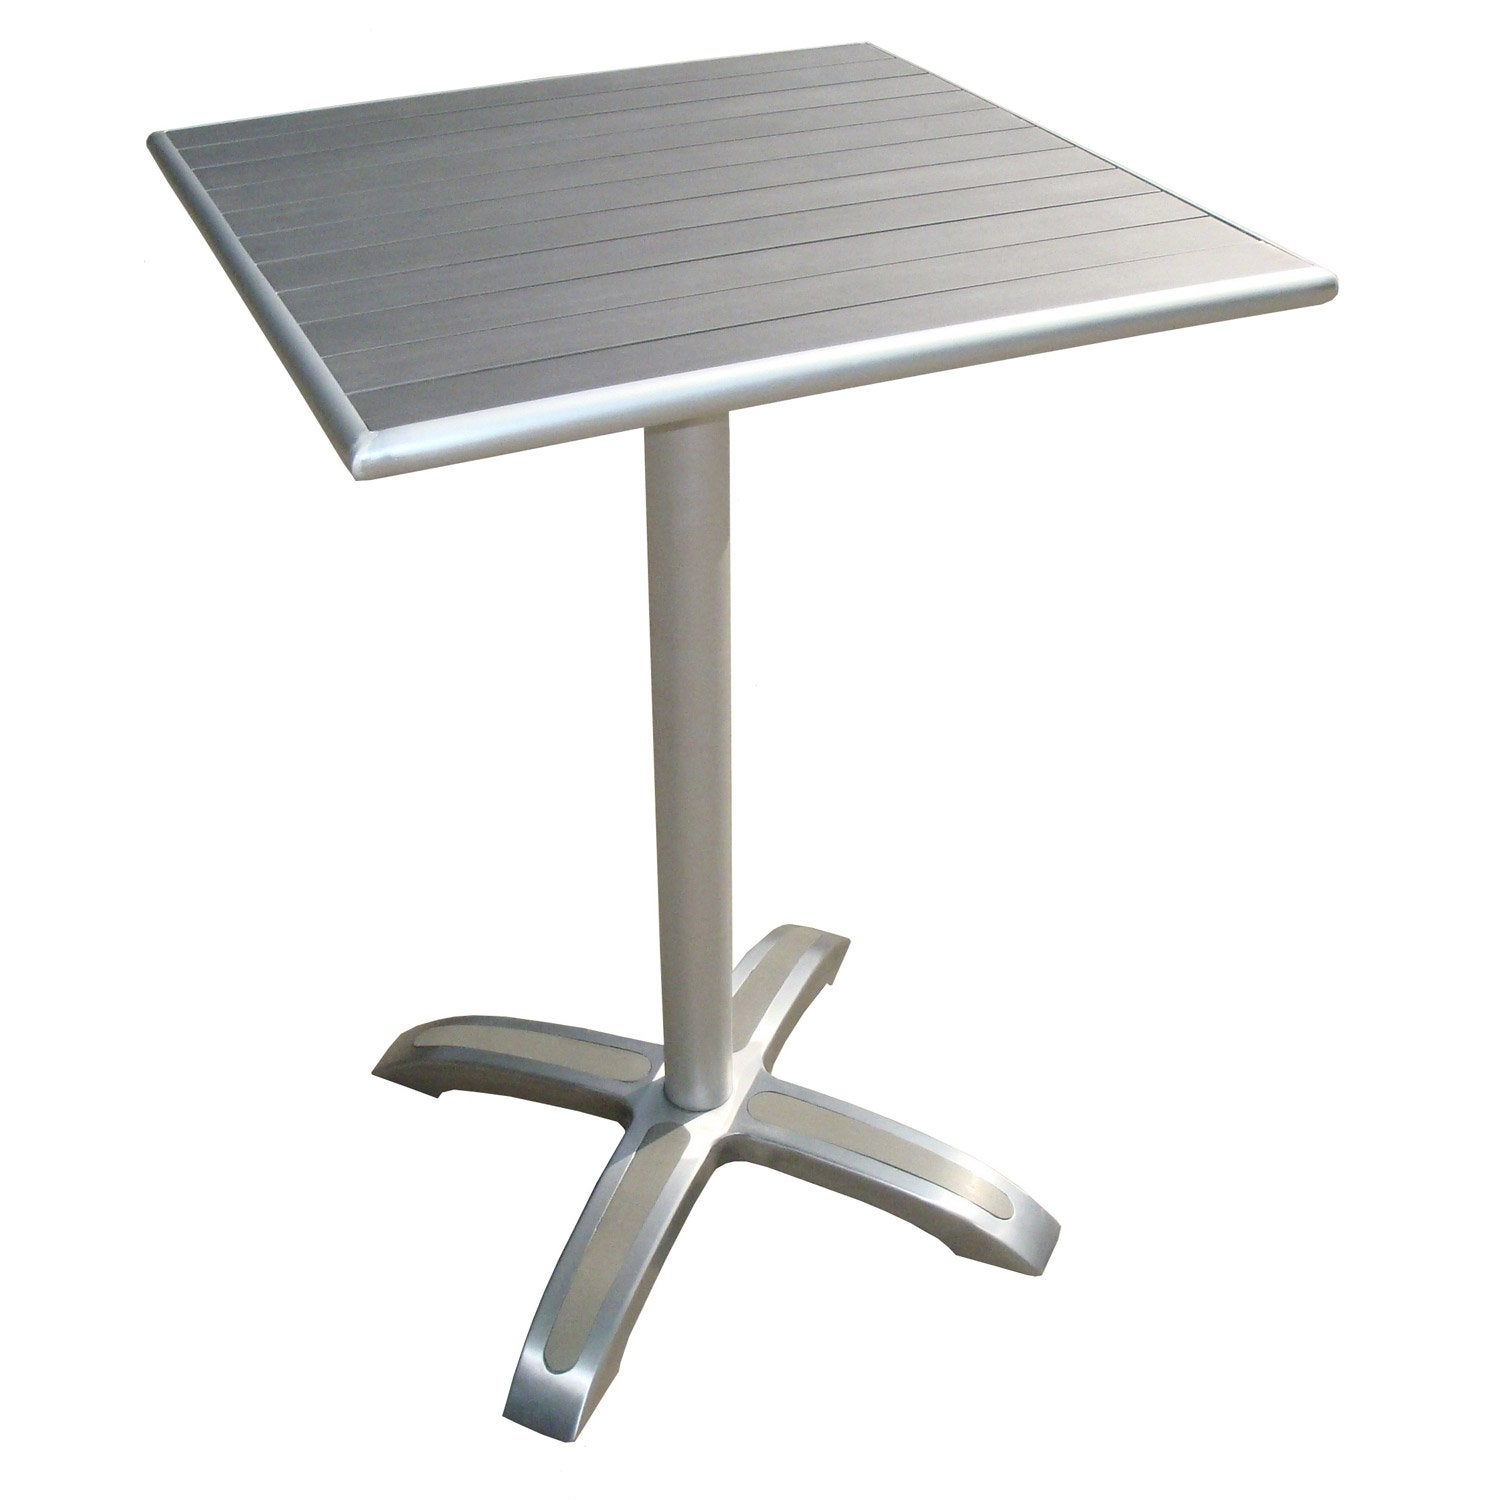 Table de jardin carr e boston naterial leroy merlin - Table jardin naterial villeurbanne ...